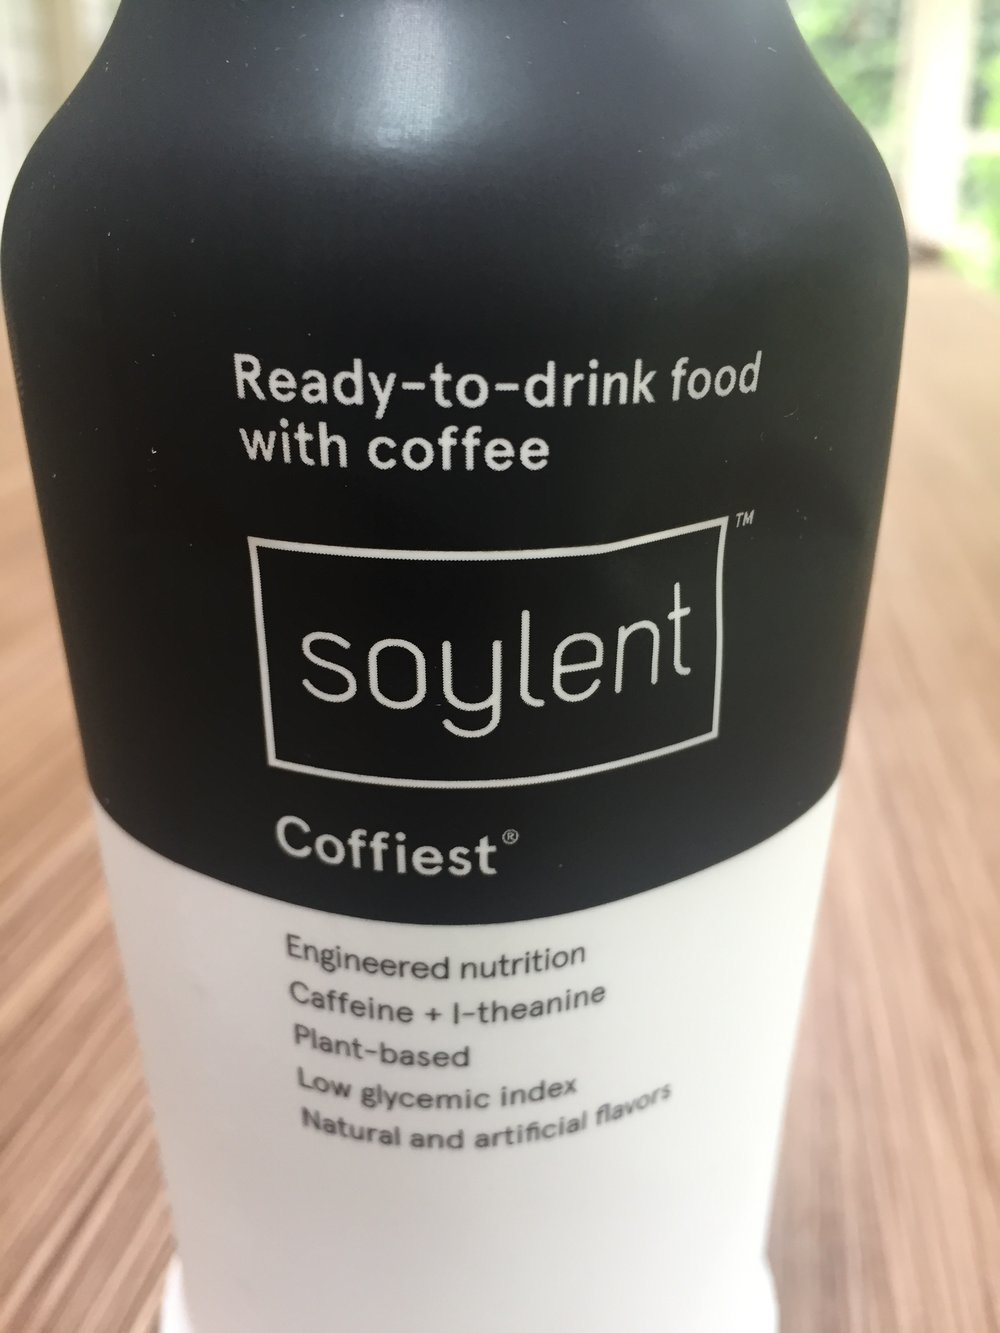 SOYLENT COFFIEST REVIEW